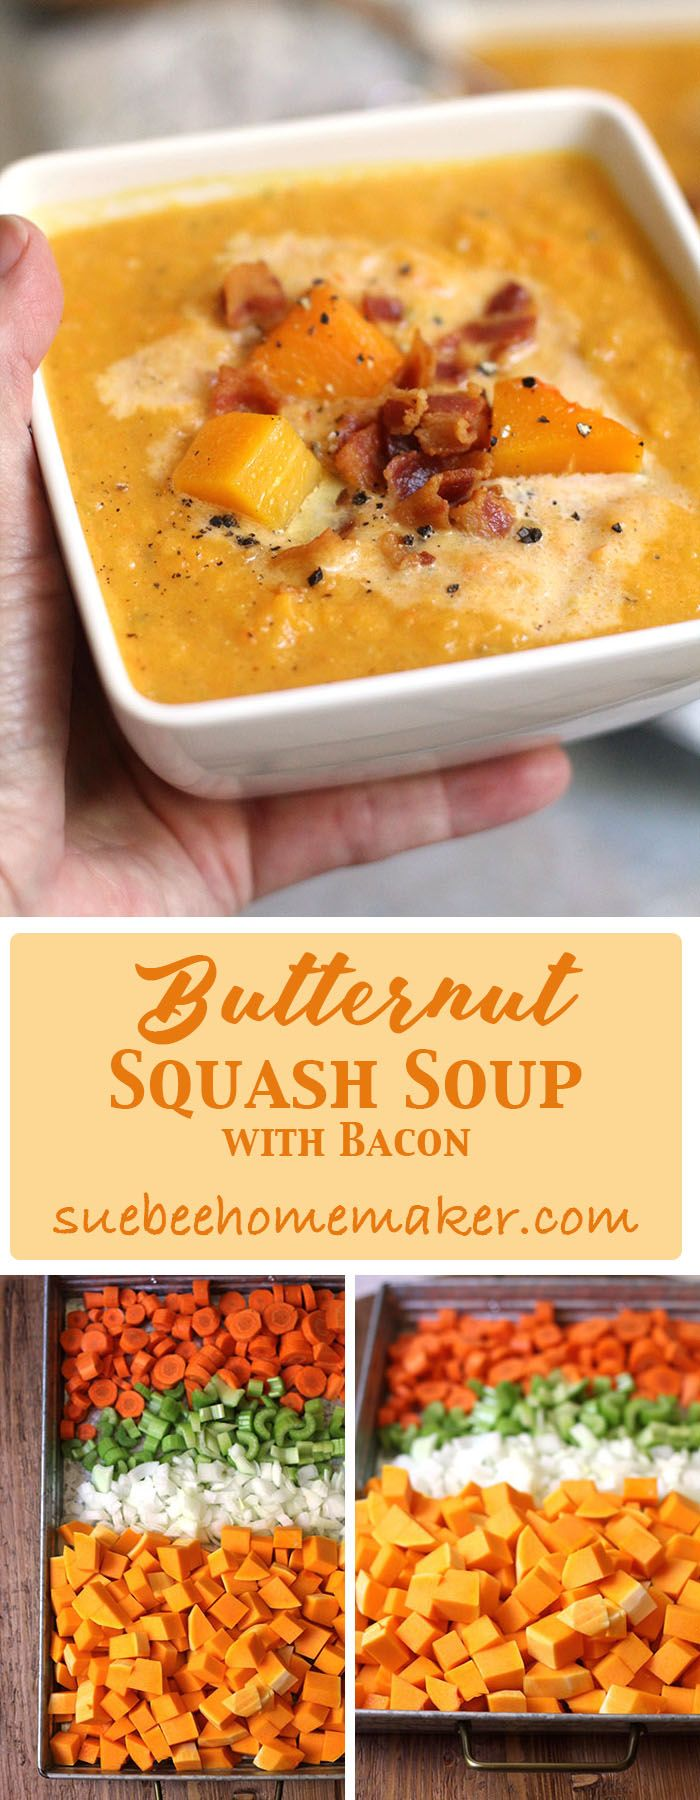 Butternut Squash Soup is a wonderful Autumn soup and is so comforting on cool days. Roasting the veggies in the oven gives it maximum flavor!